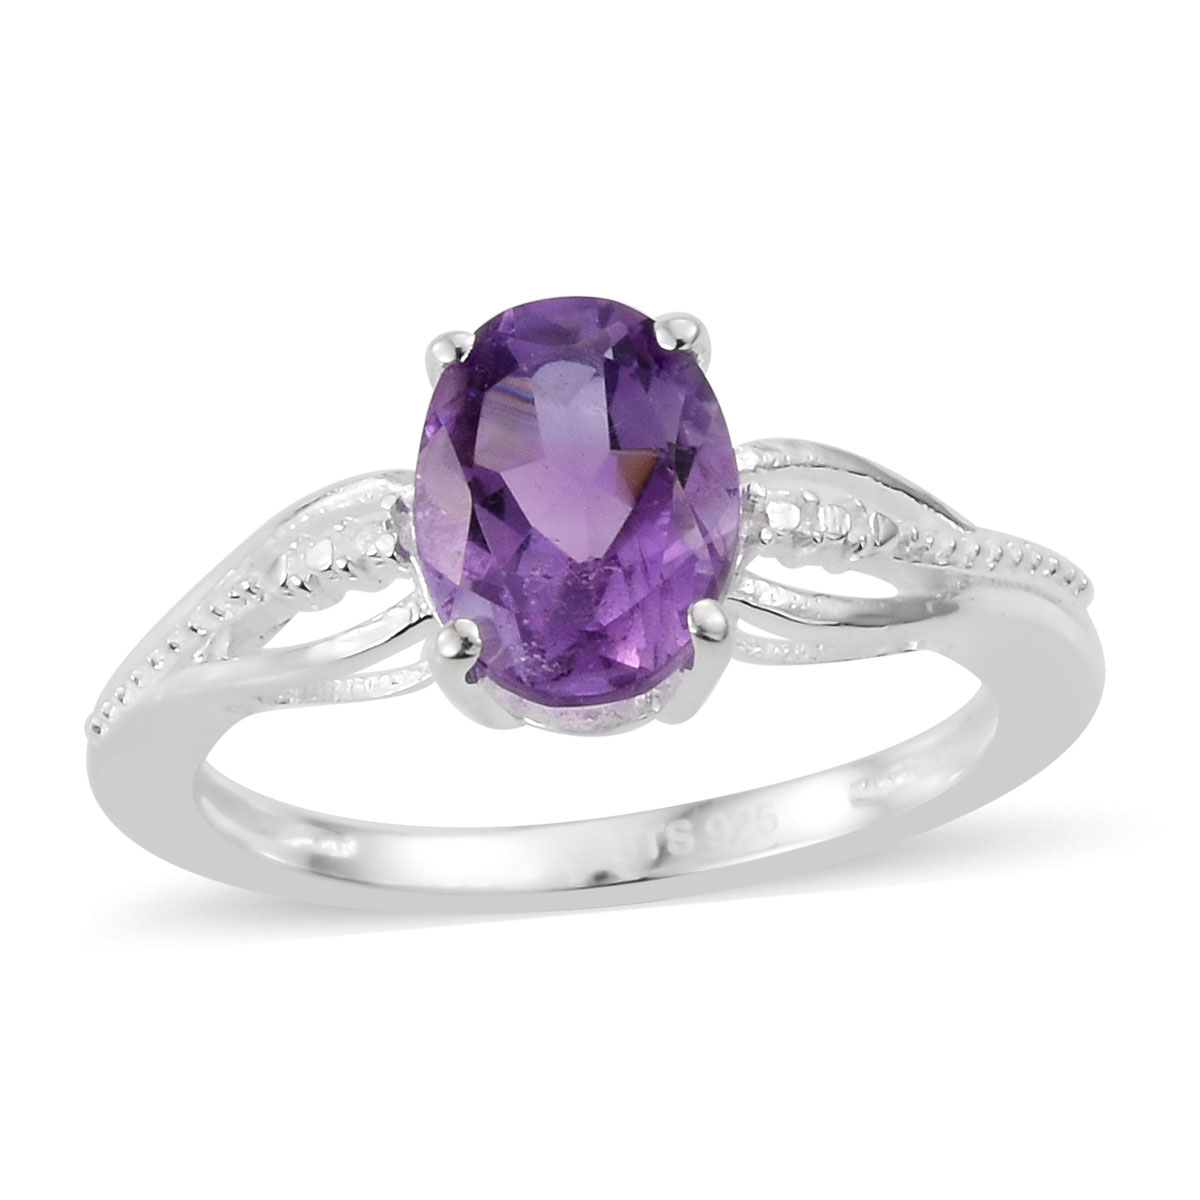 Amethyst Ring in Platinum Over Sterling Silver (Size 5.0) 1.15 ctw